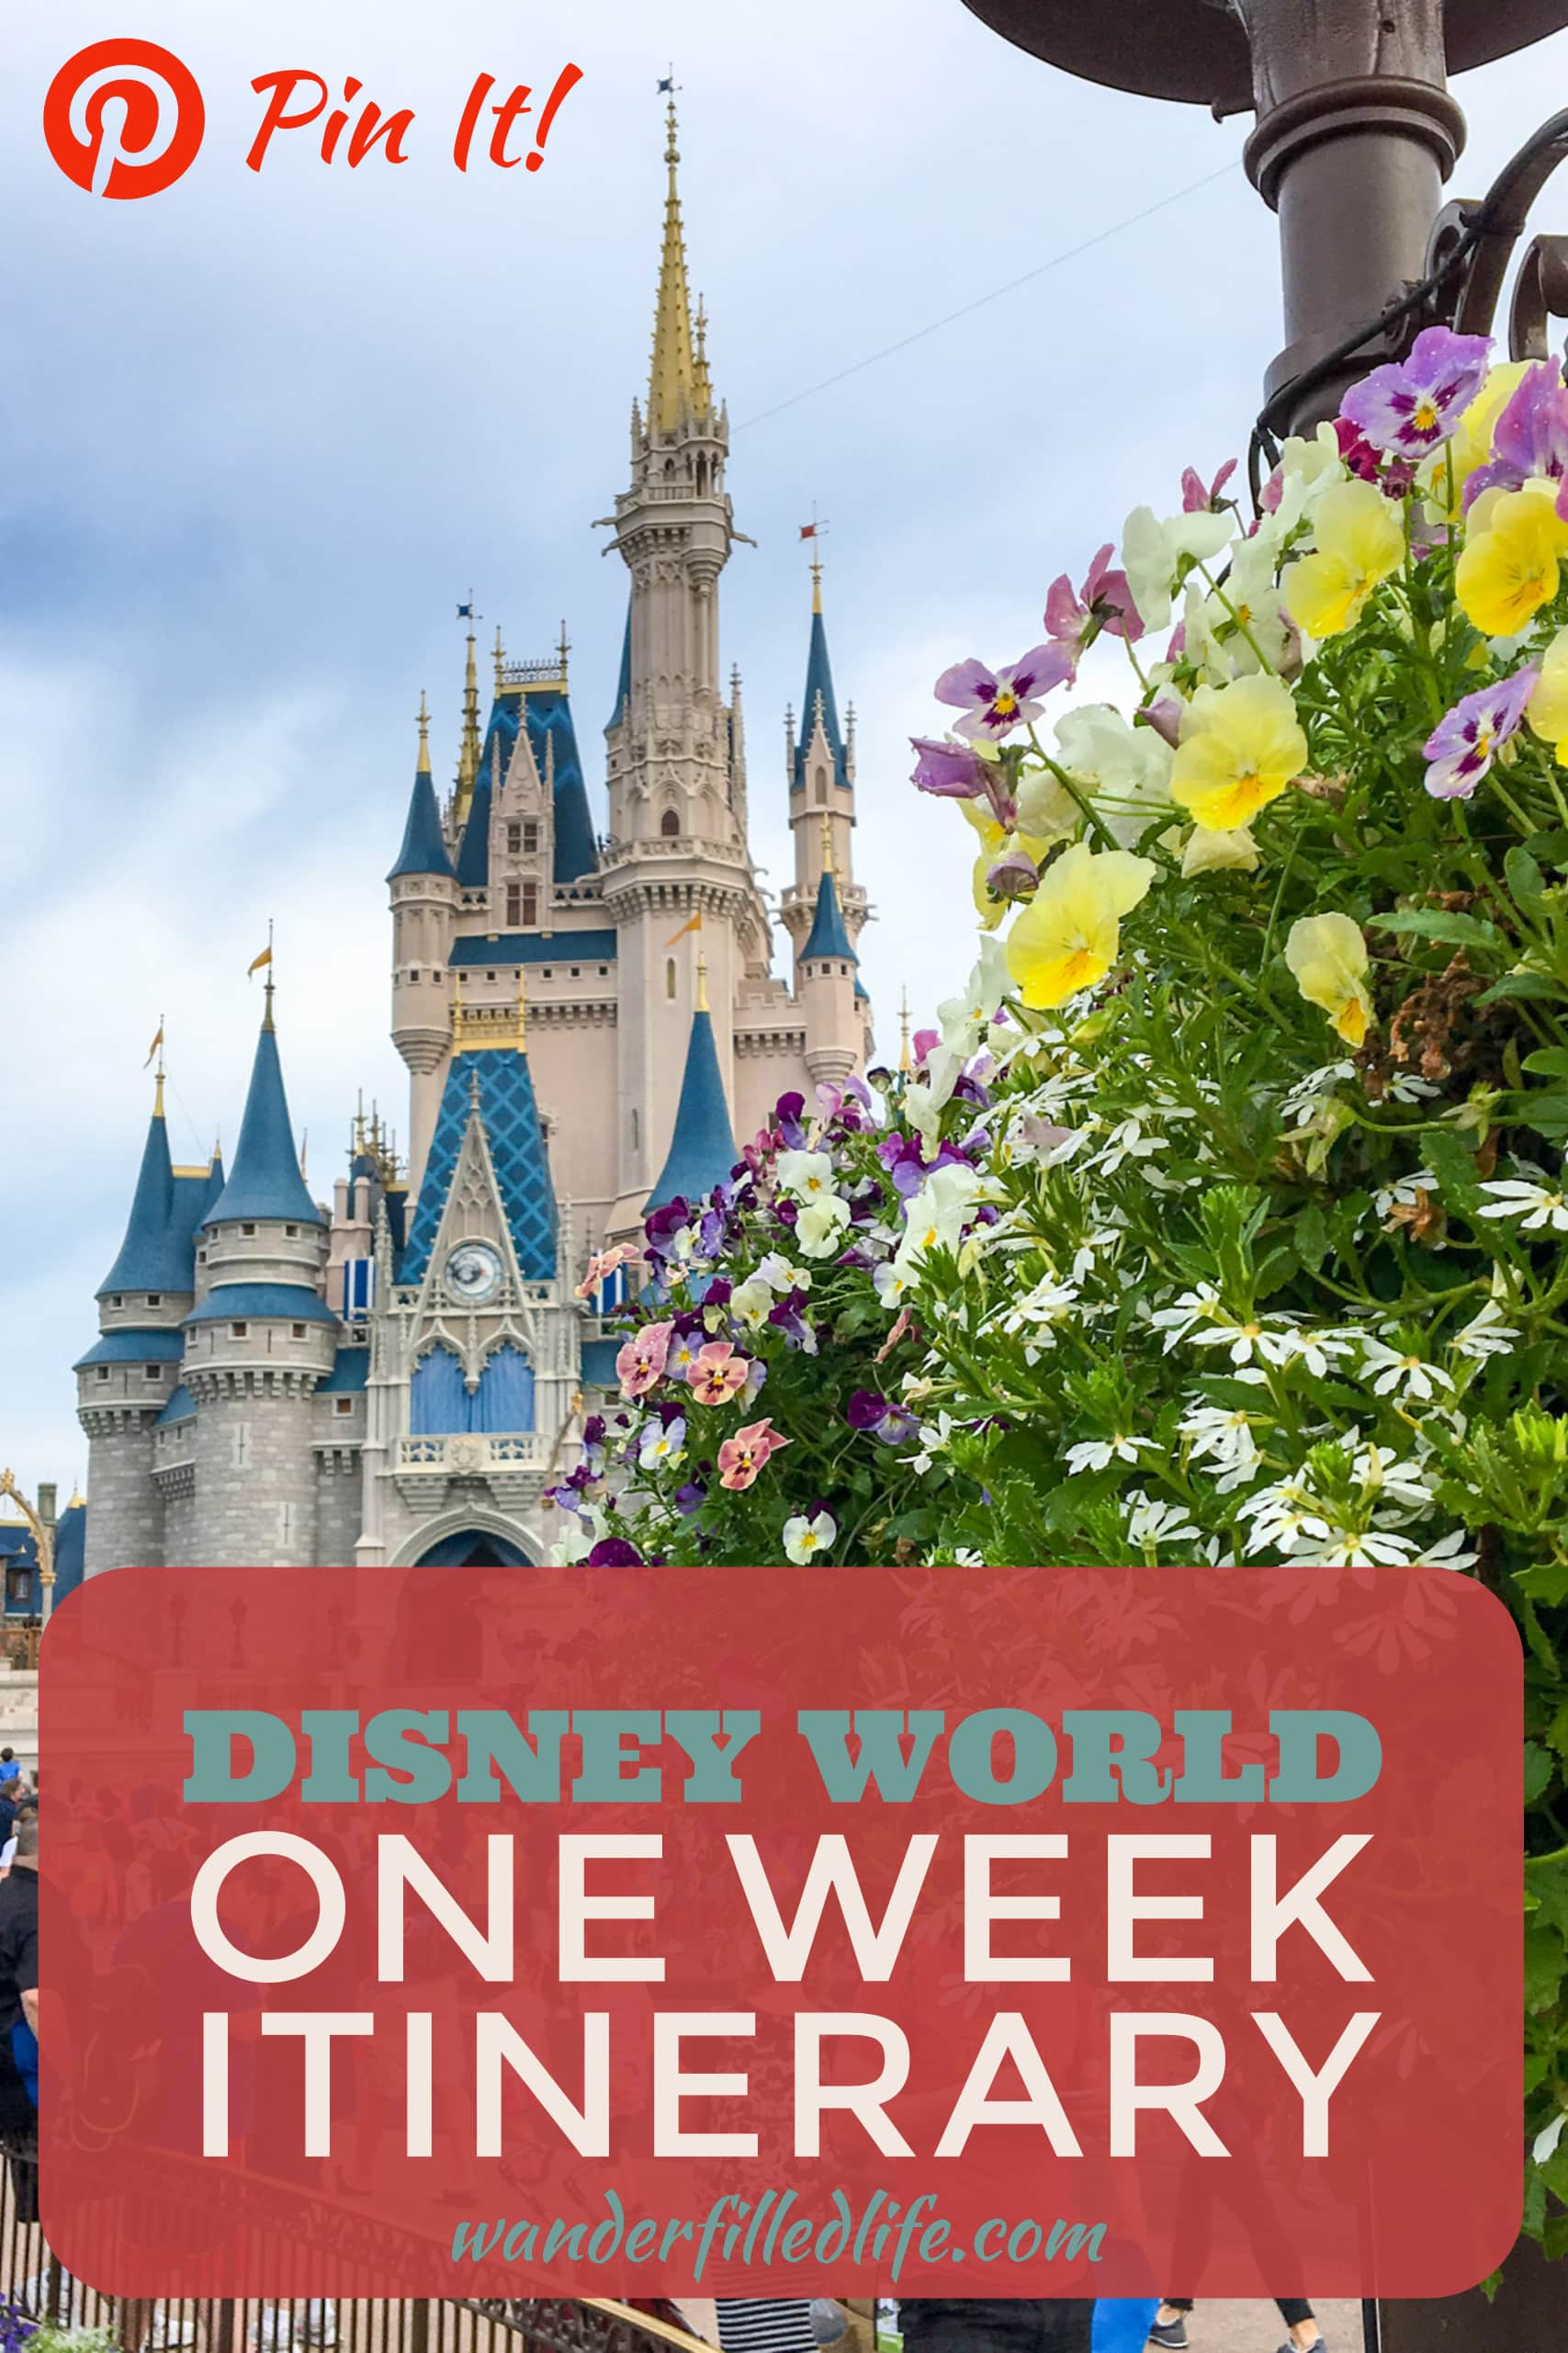 Our itinerary for a week at Disney World. Includes out stay at Fort Wilderness, visits to Magic Kingdom, Epcot, Animal Kingdom and Hollywood Studios.